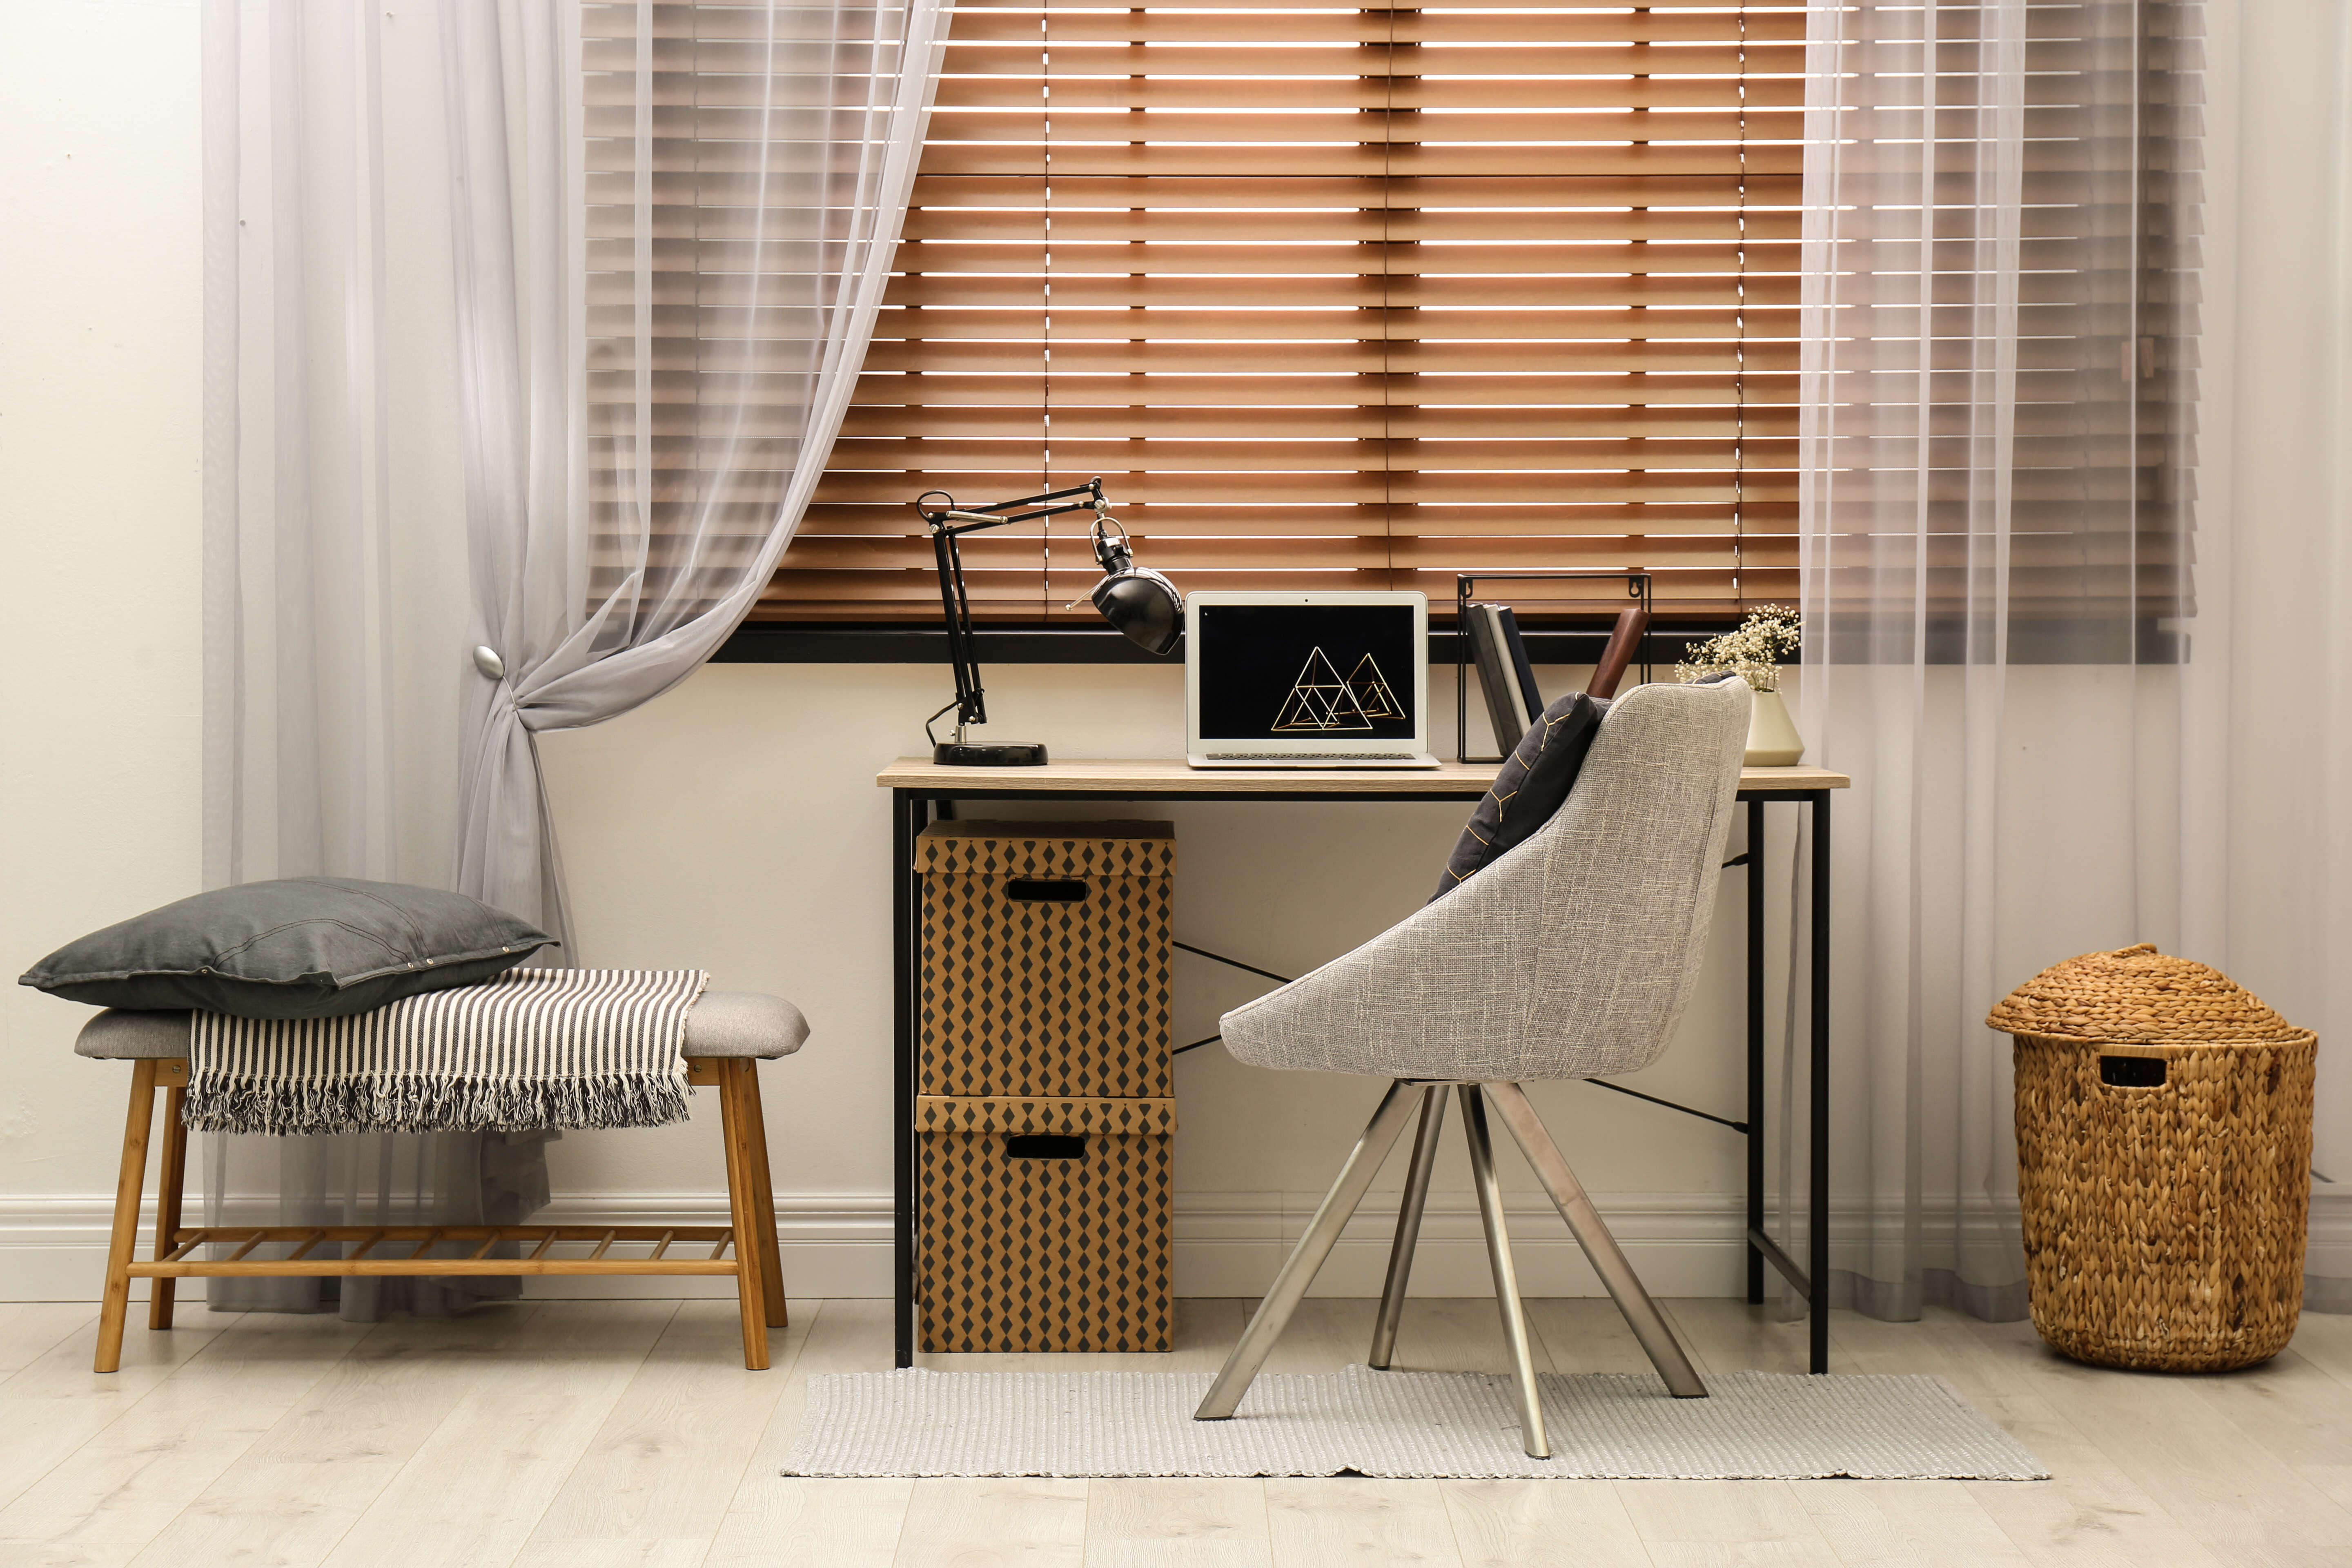 Buy curtains and blinds Singapore for your room